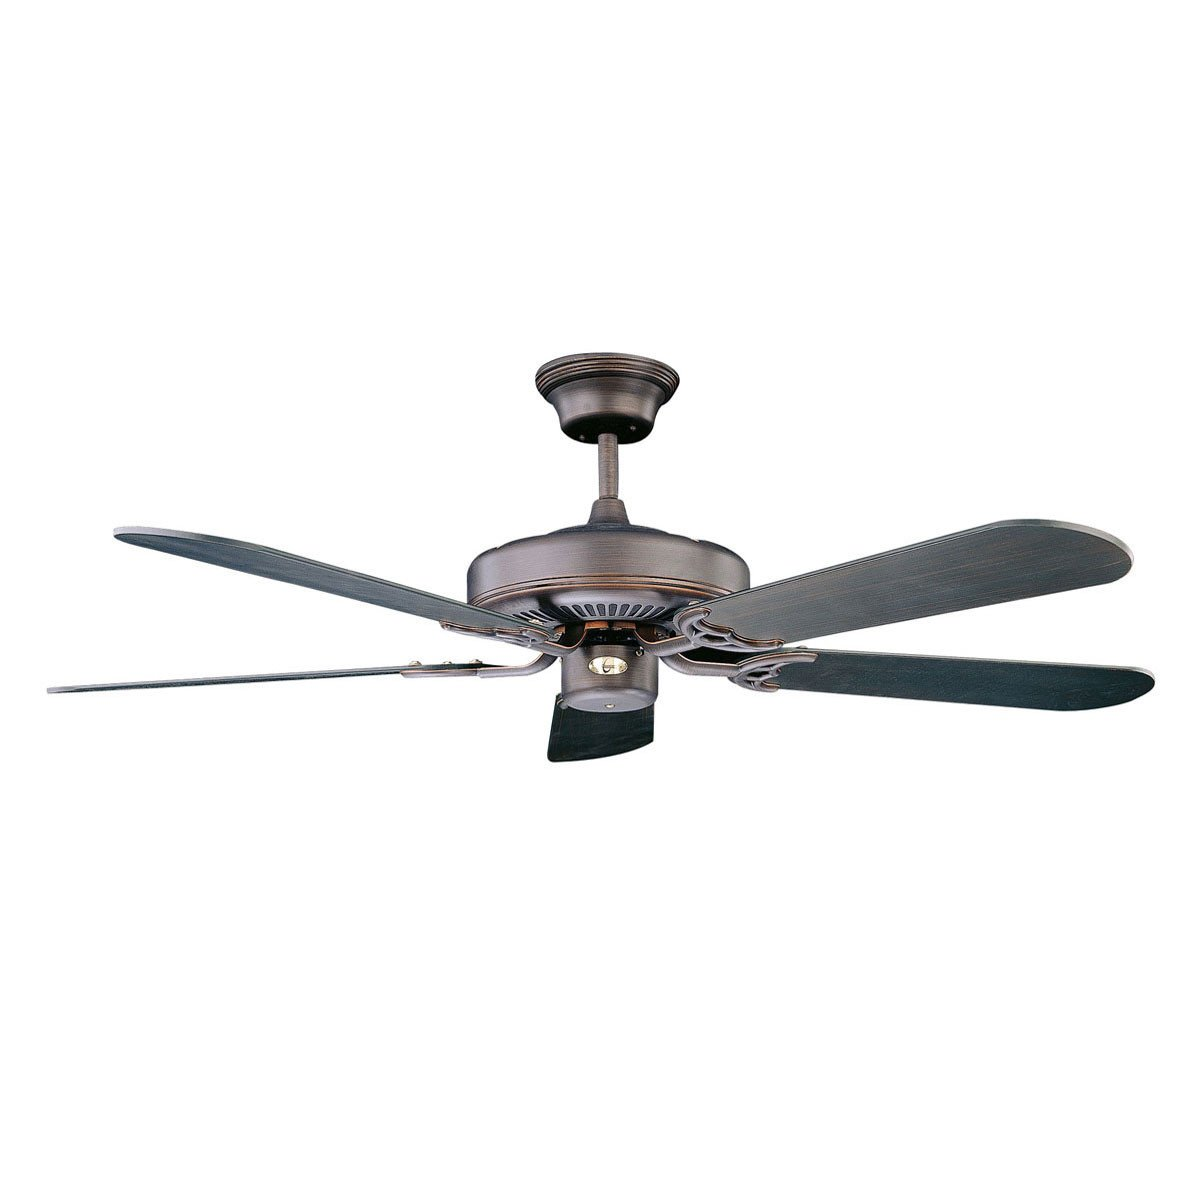 "Concord Fans Decorama Energy Saver Modern 52"" Oil Rubbed Bronze Ceiling Fan"